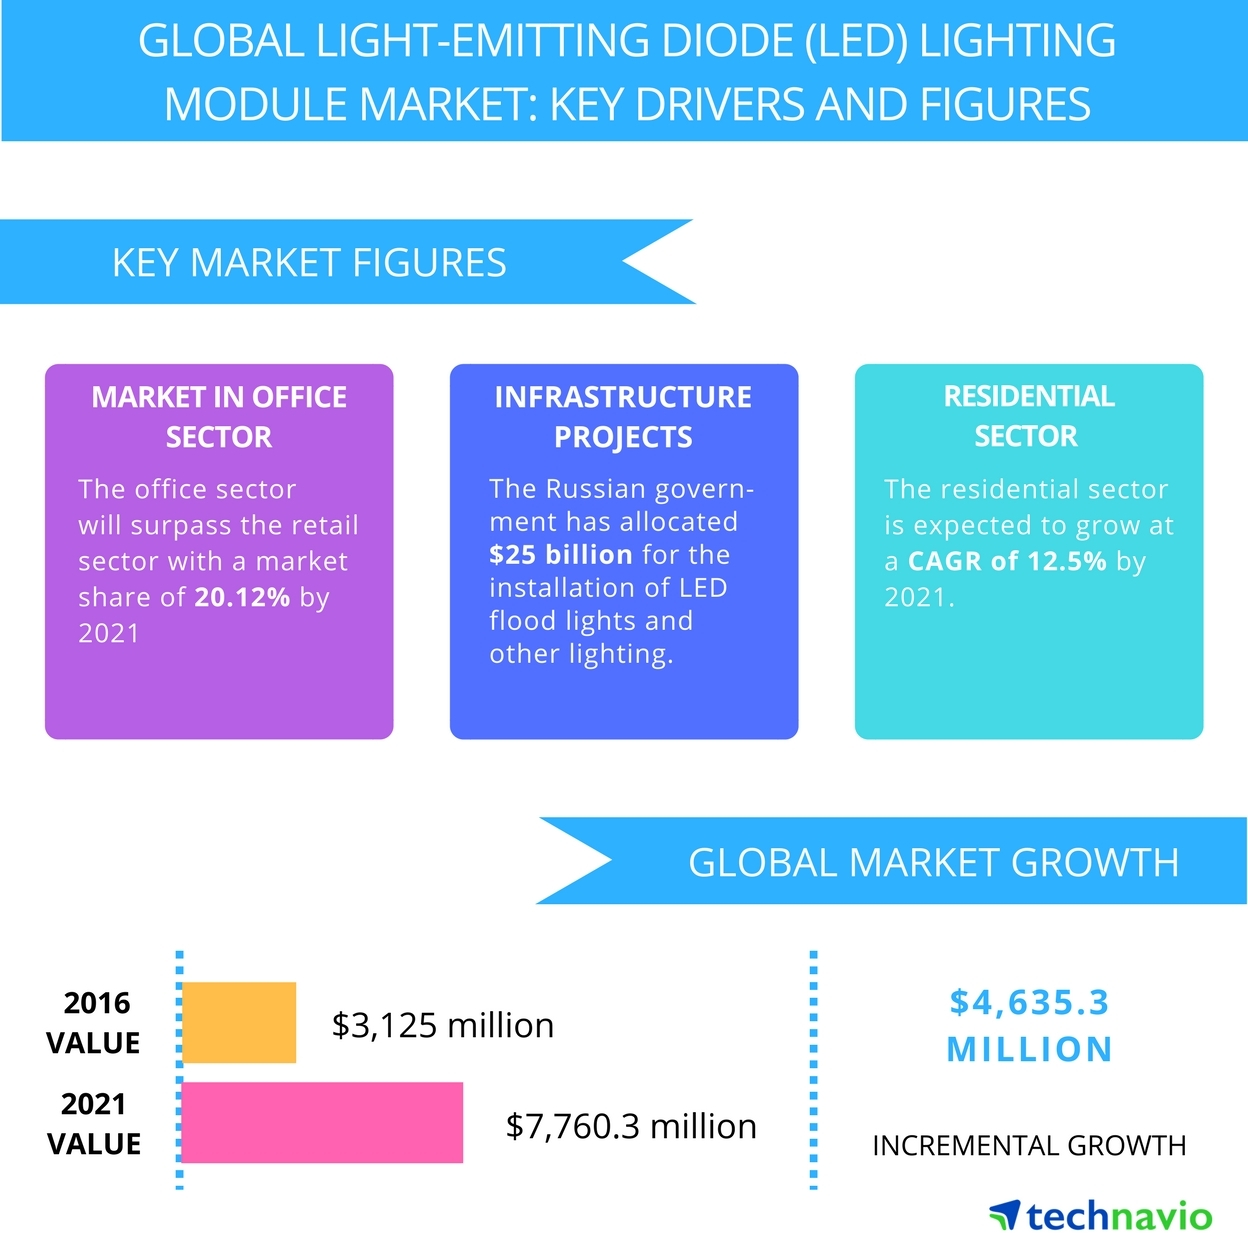 Diode Lighting Global Led Lighting Module Market To Grow At An Impressive Cagr Of